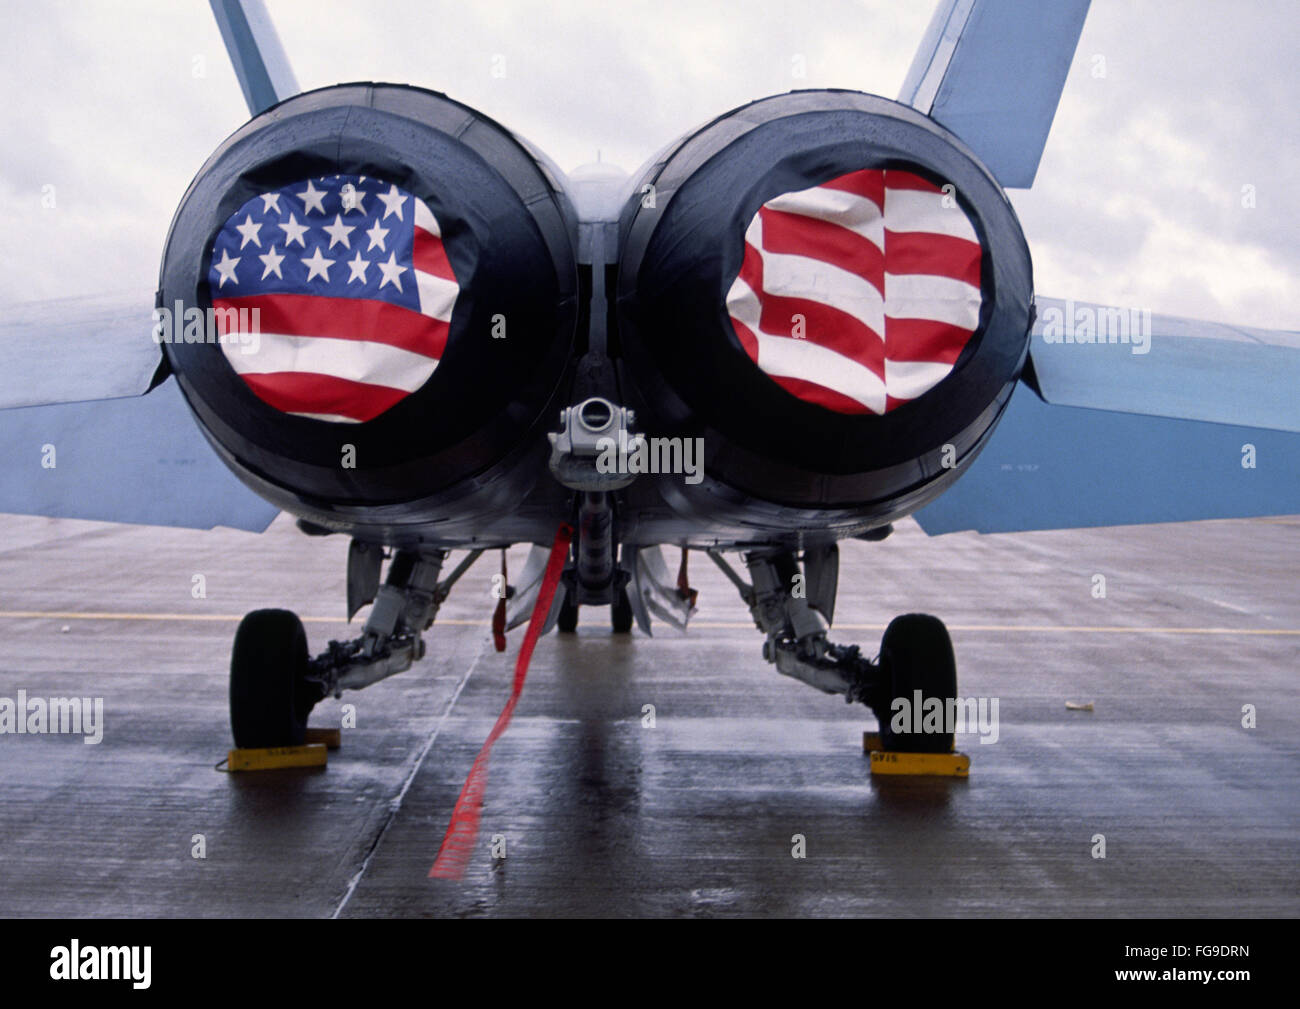 Patriotic American Flag covers on the rear of a USA F/A-18 Hornet fighter combat jet aircraft. Stock Photo